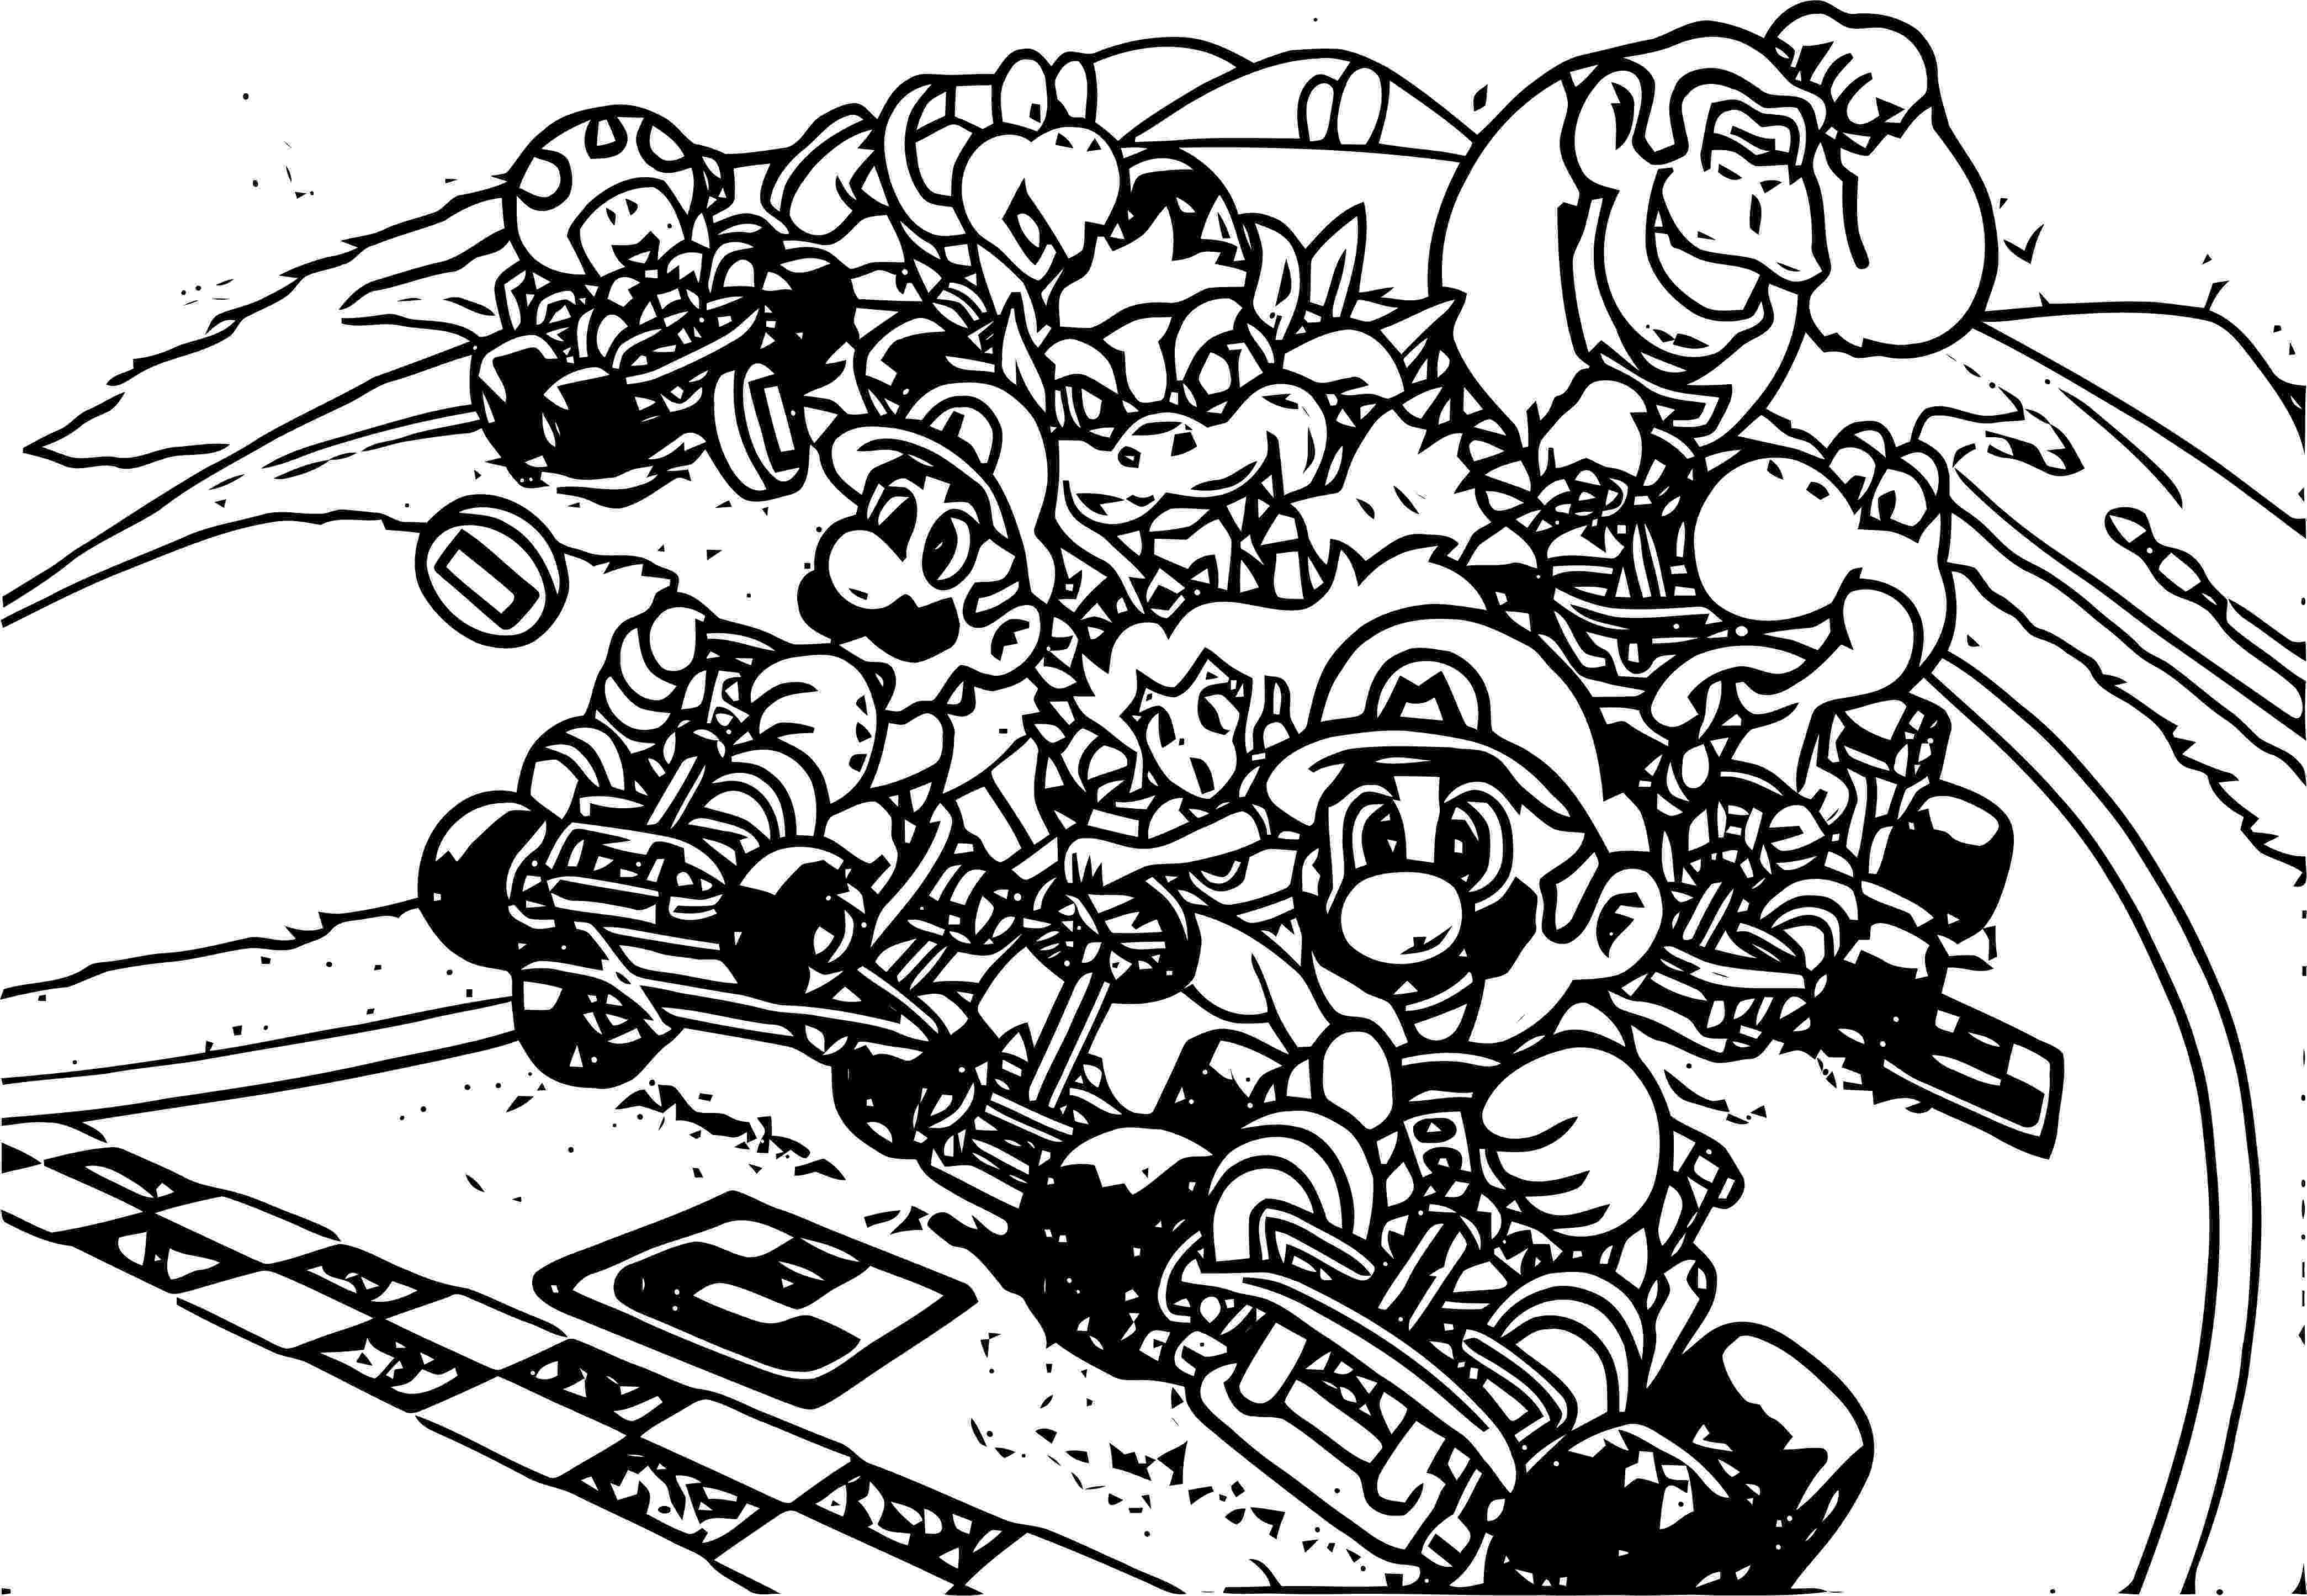 mario kart wii coloring pages mario kart coloring pages best coloring pages for kids wii kart mario pages coloring